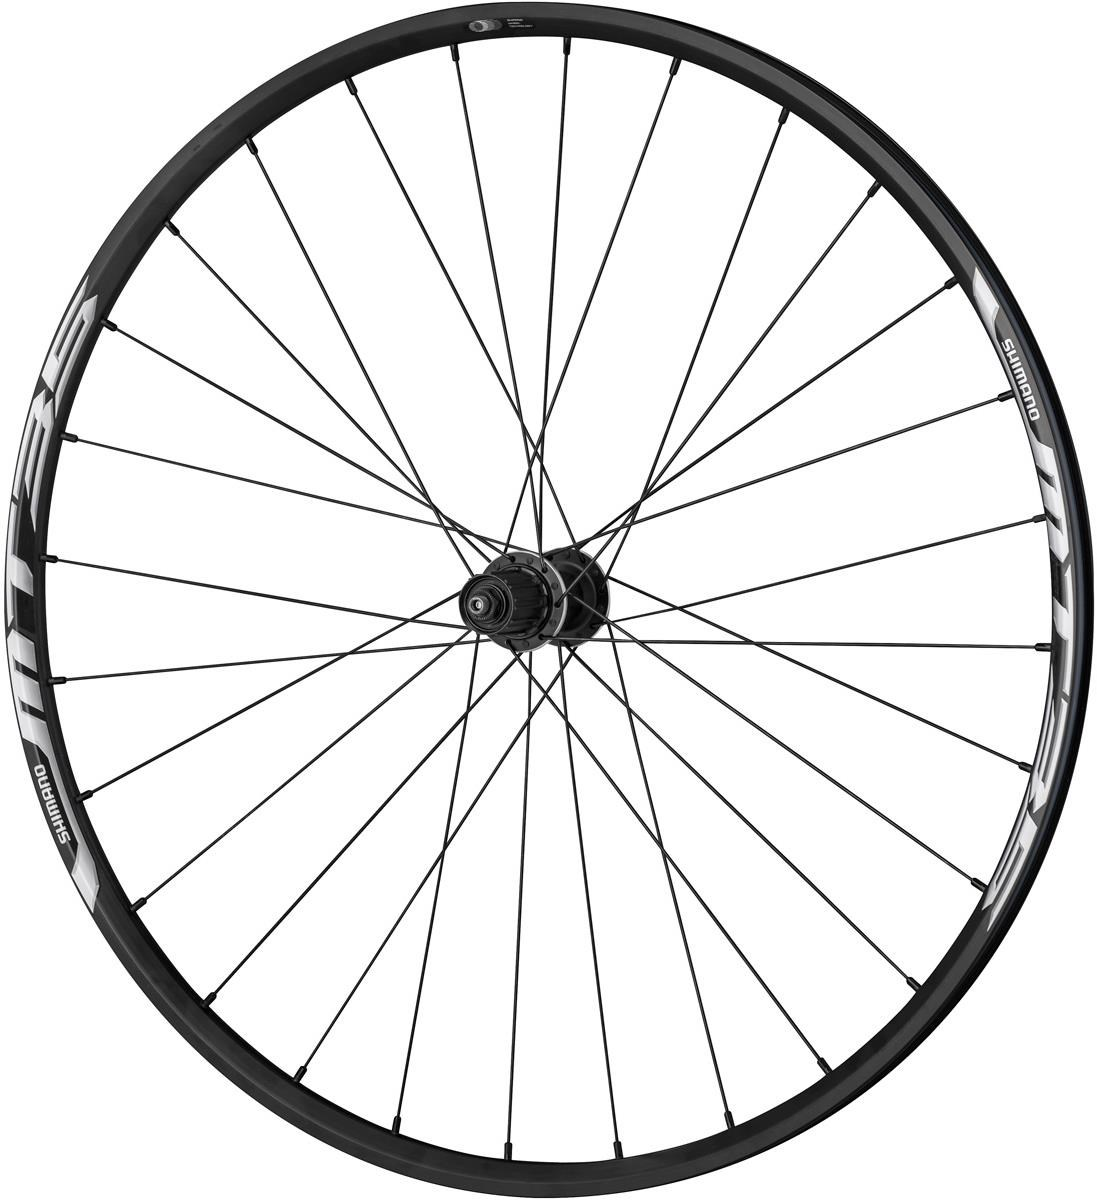 Shimano WH-MT35 XC 650B/27.5in Wheel - QR Clincher